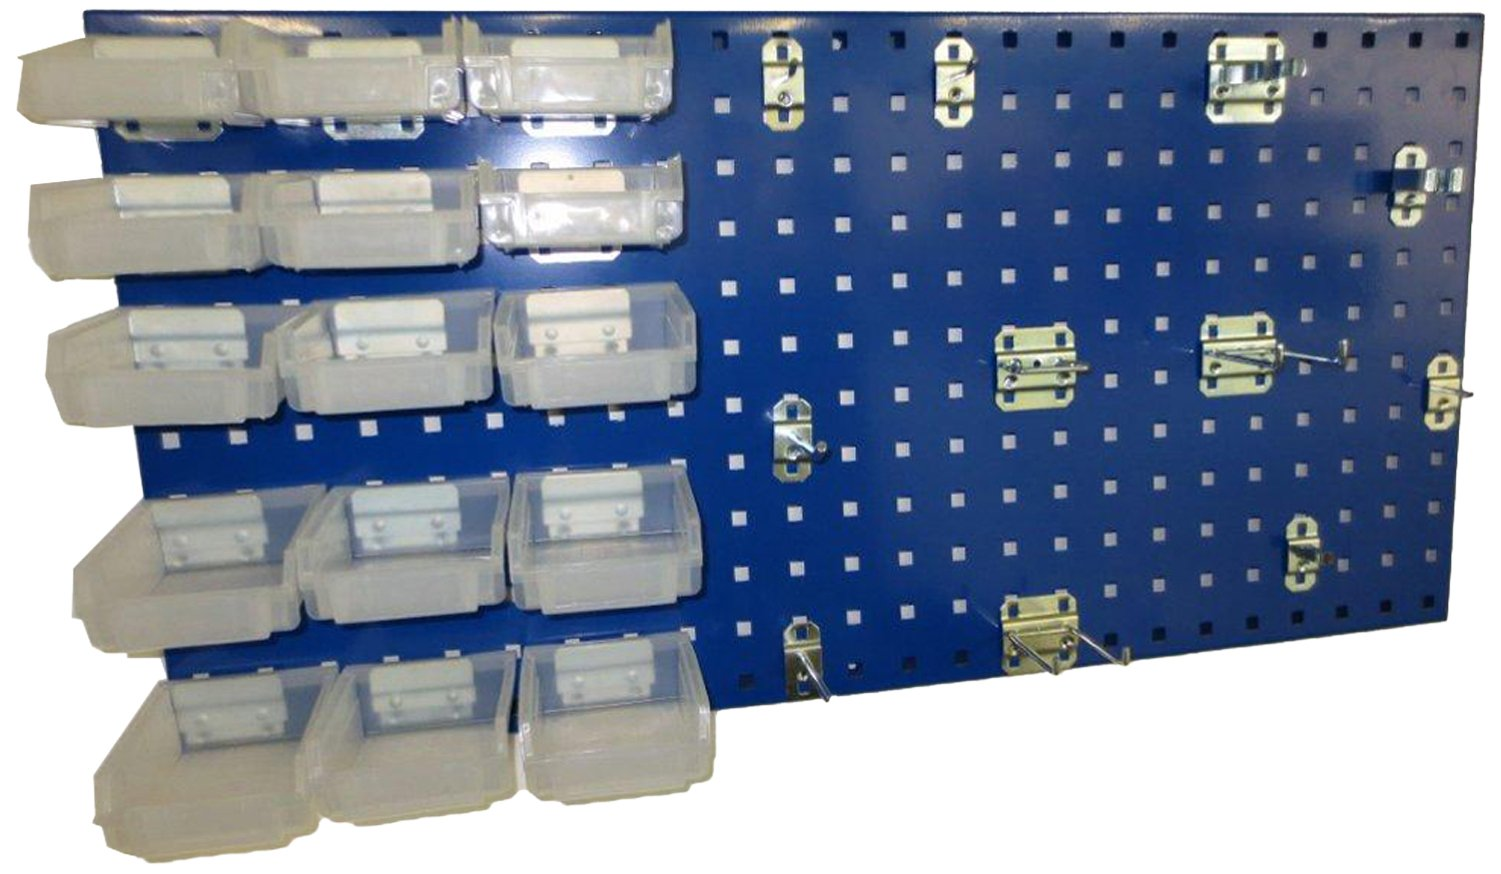 Triton Products LB18-1BHBTR-Kit 18 In W x 36 In H Epoxy Steel Square Hole Pegboard Kit with Mounting Hardware, Blue, 43-Pack